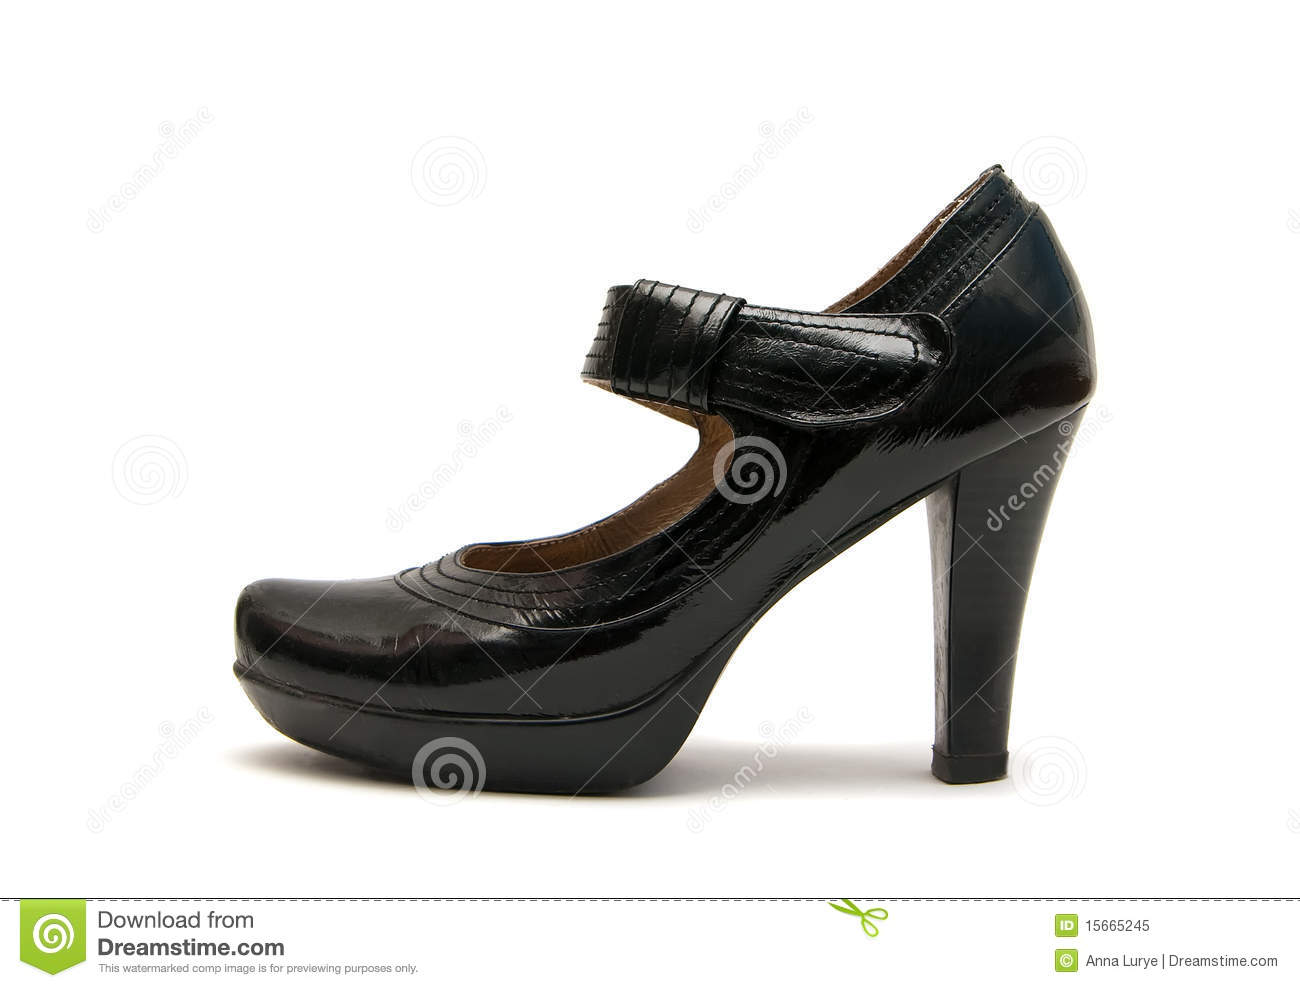 Original Modern Women39s Leather Shoes Over White Royalty Free Stock Image